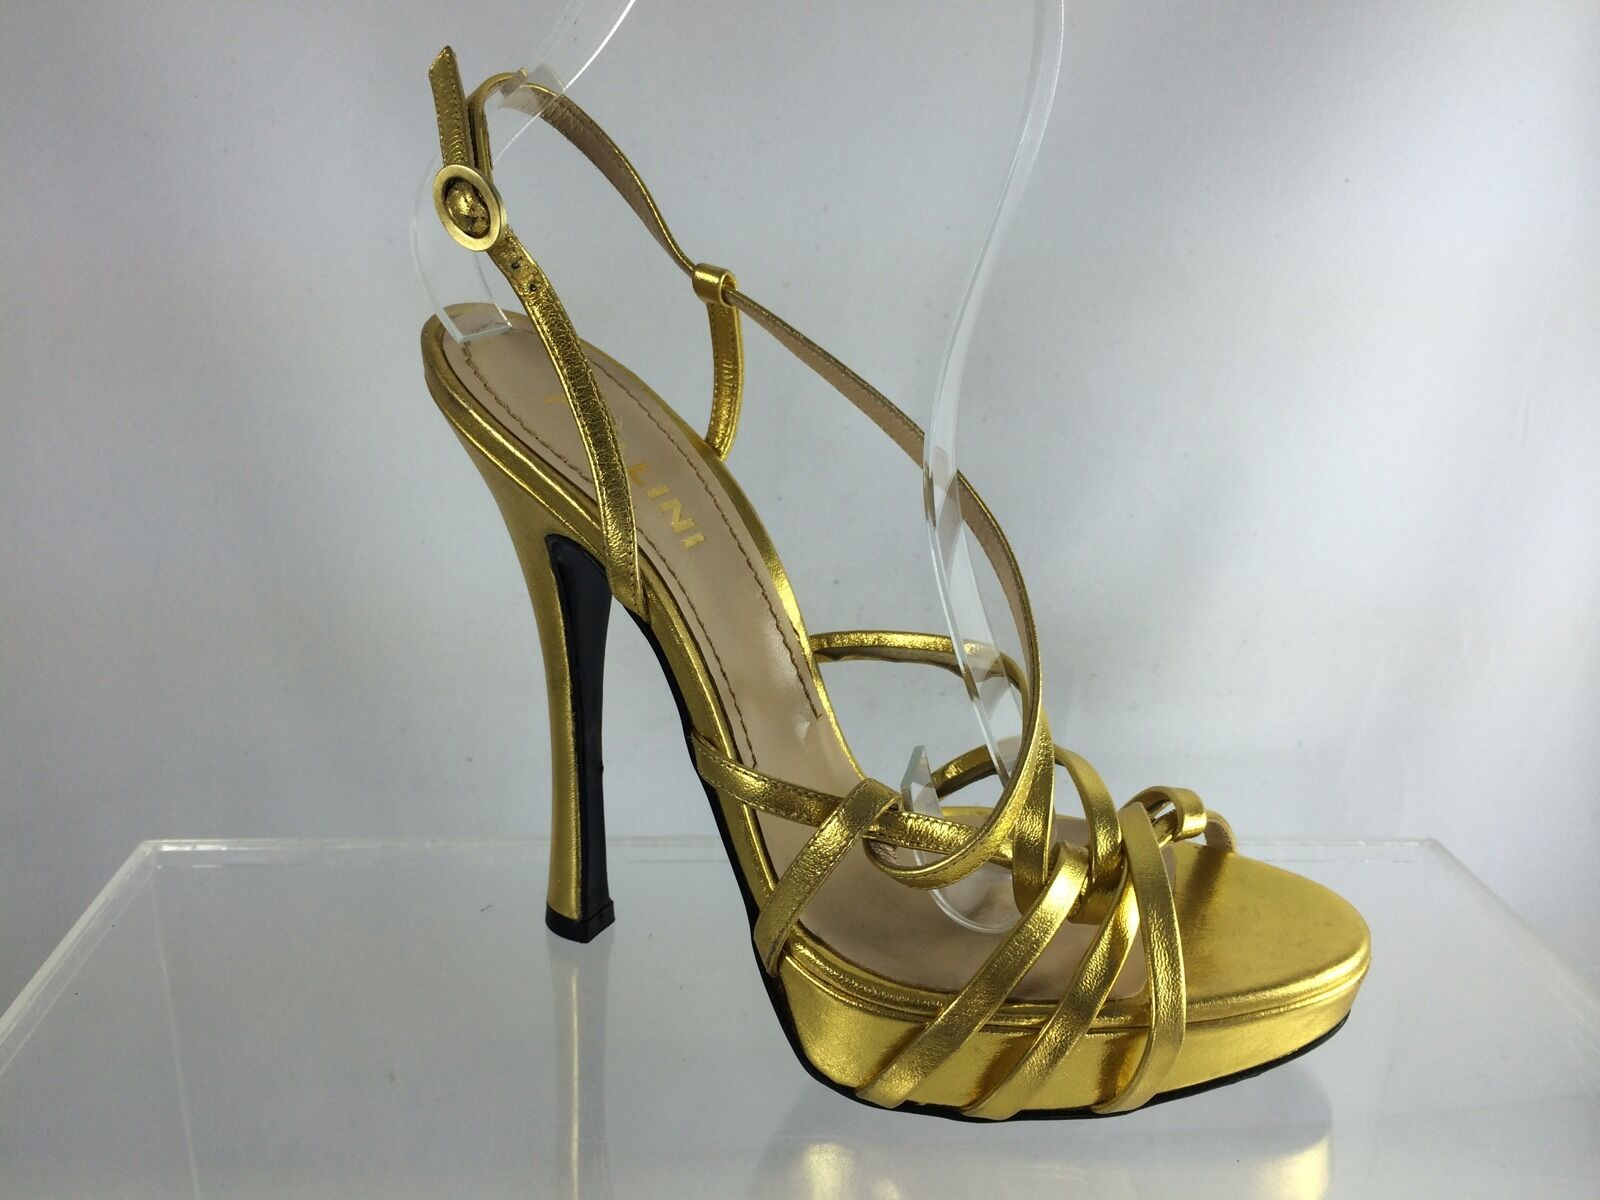 695 New Pollini gold Metallic Leather Strappy High Heel Sandals 37.5